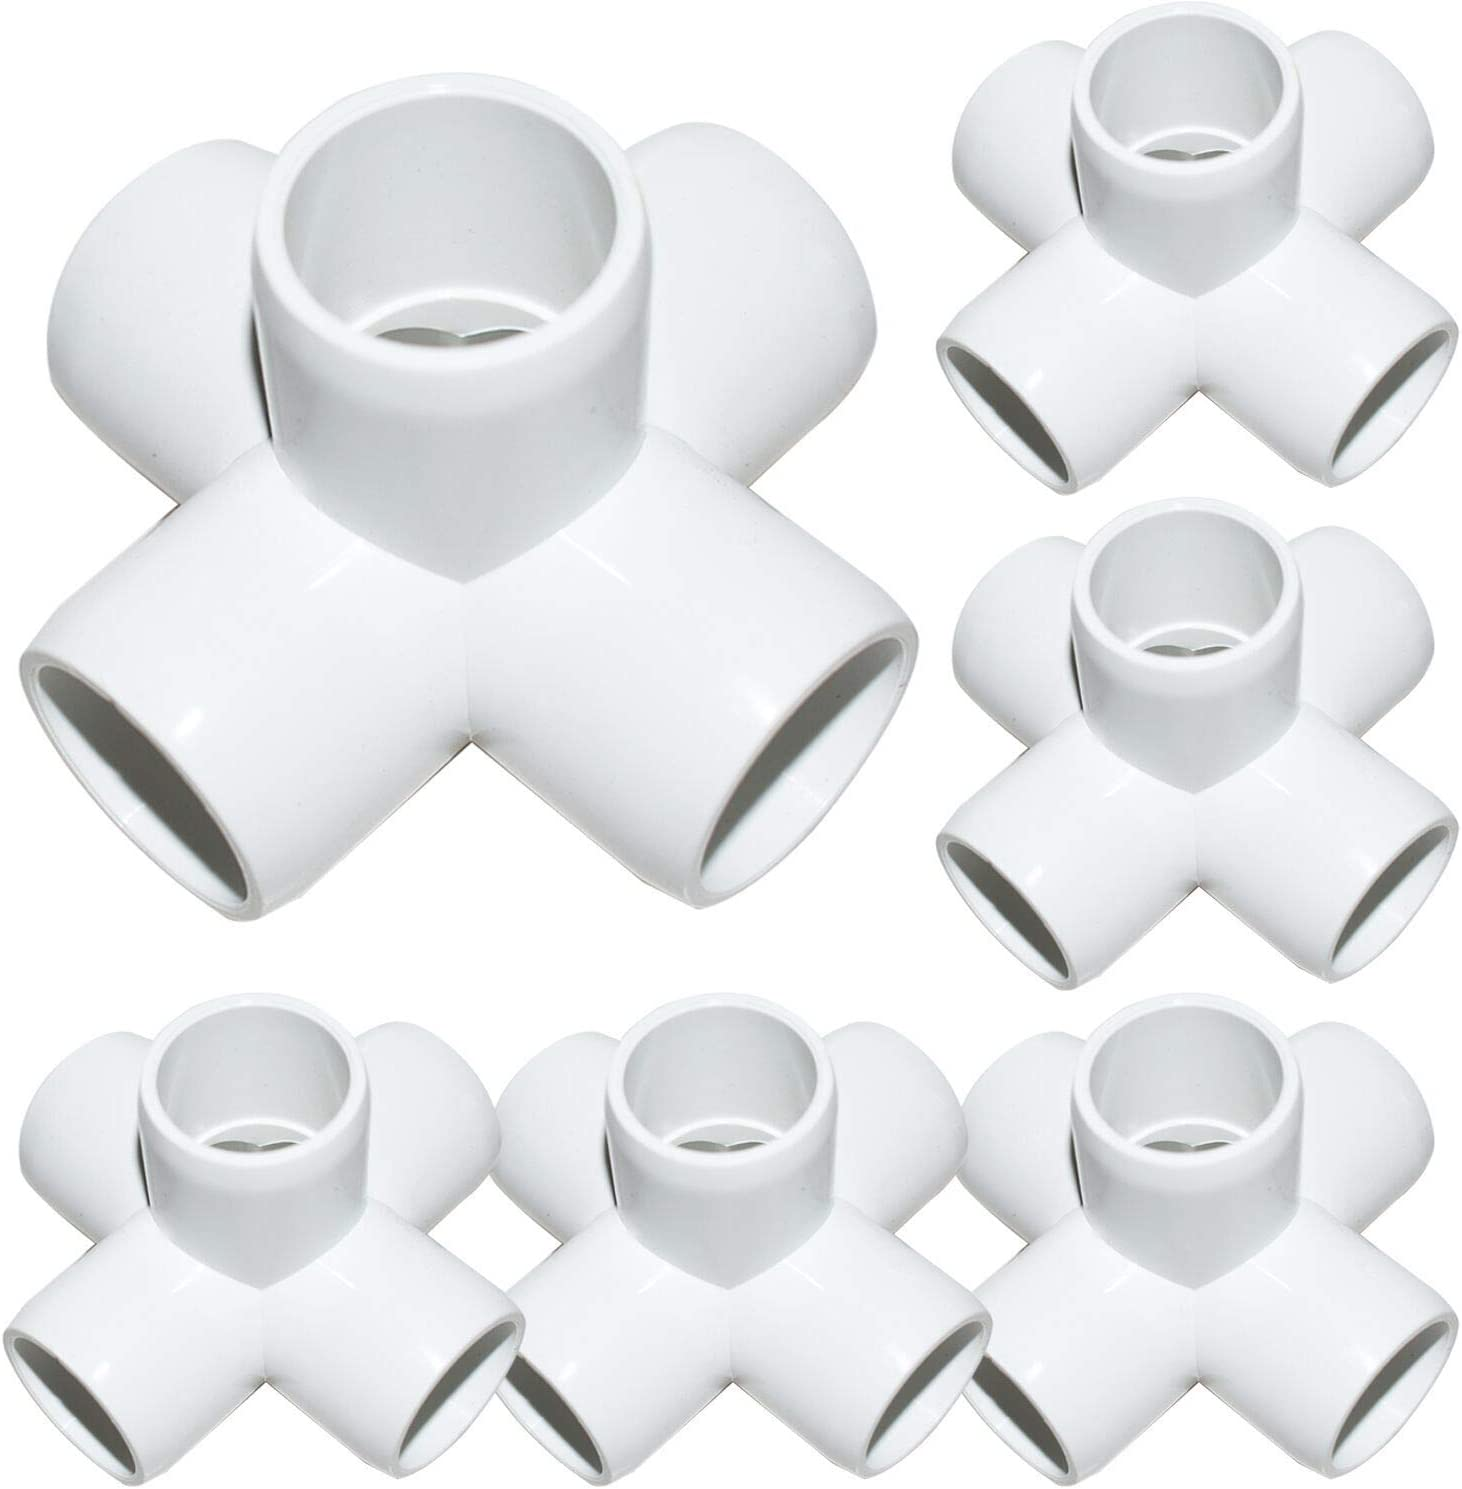 12Pack 5-Way 3/4Inch PVC Fittings, Heavy Duty Furniture Grade PVC Pipe Connectors, White 5 Way Side Outlet Tees, PVC Elbow Corner Fittings for Building PVC Furniture Greenhouse Shed Tent Storage Frame